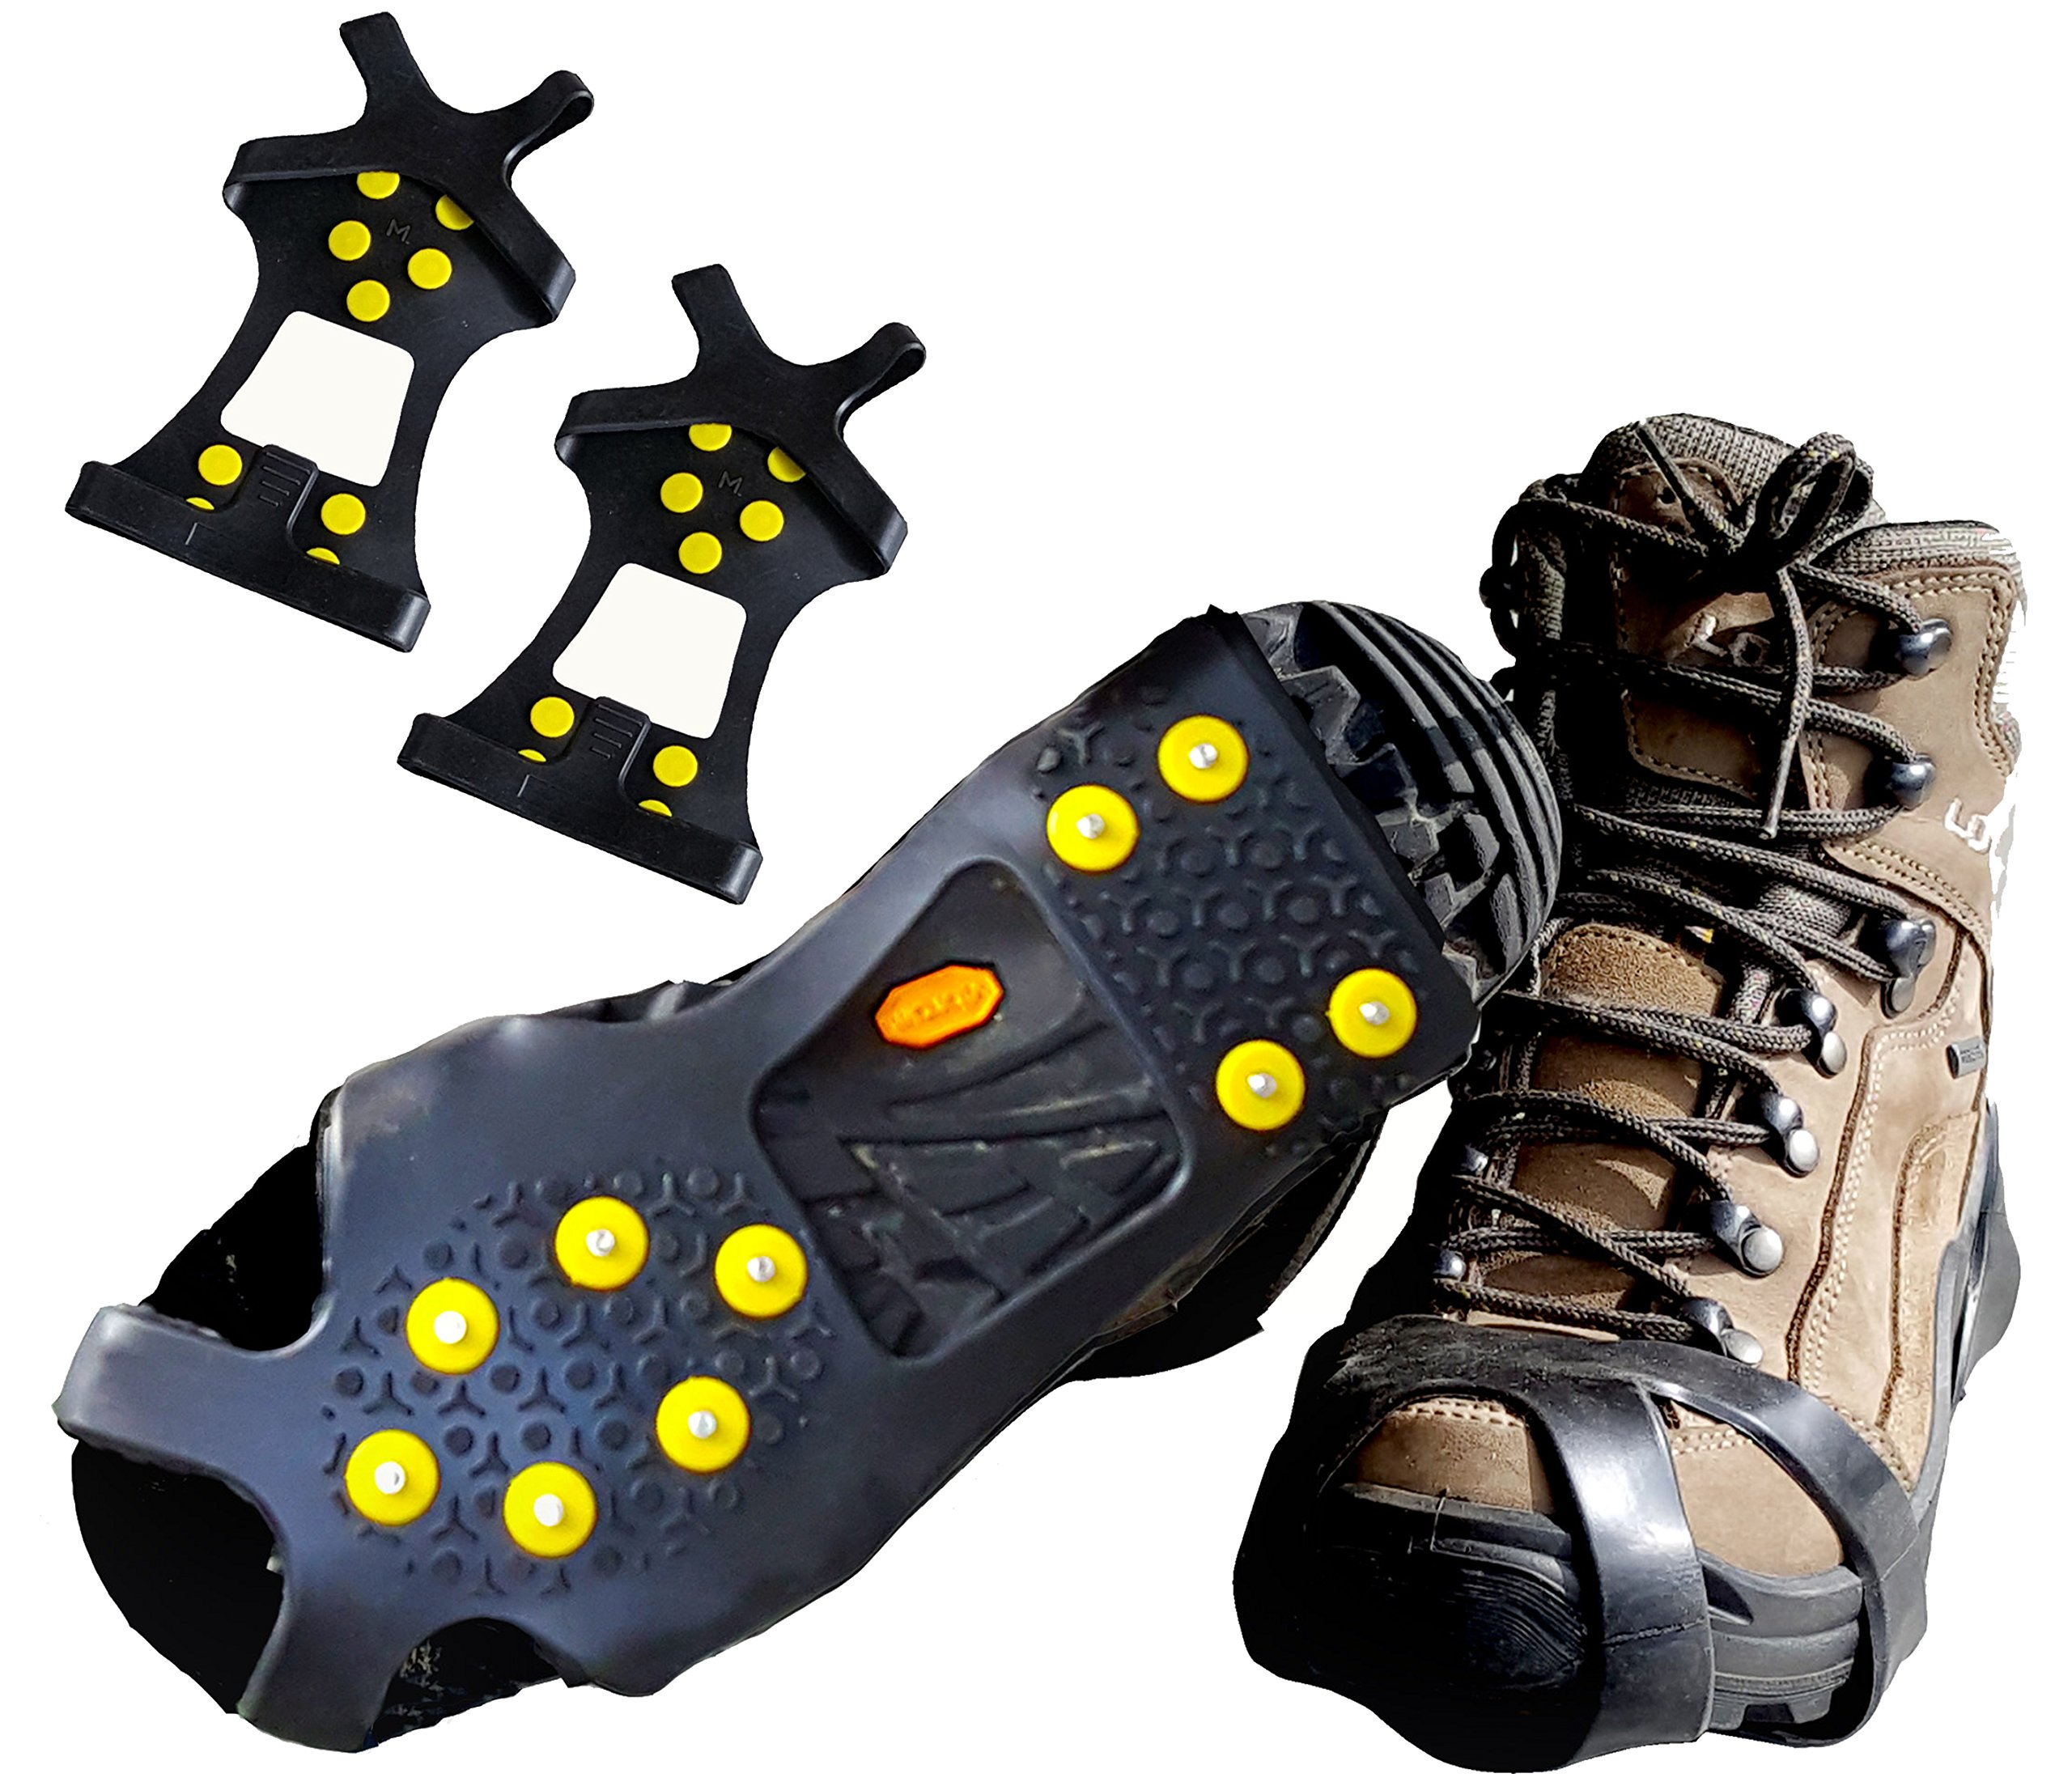 592d262d187e Limm Ice Traction Cleats Pro - Grips Quickly and Easily Over Footwear for  Snow and Ice